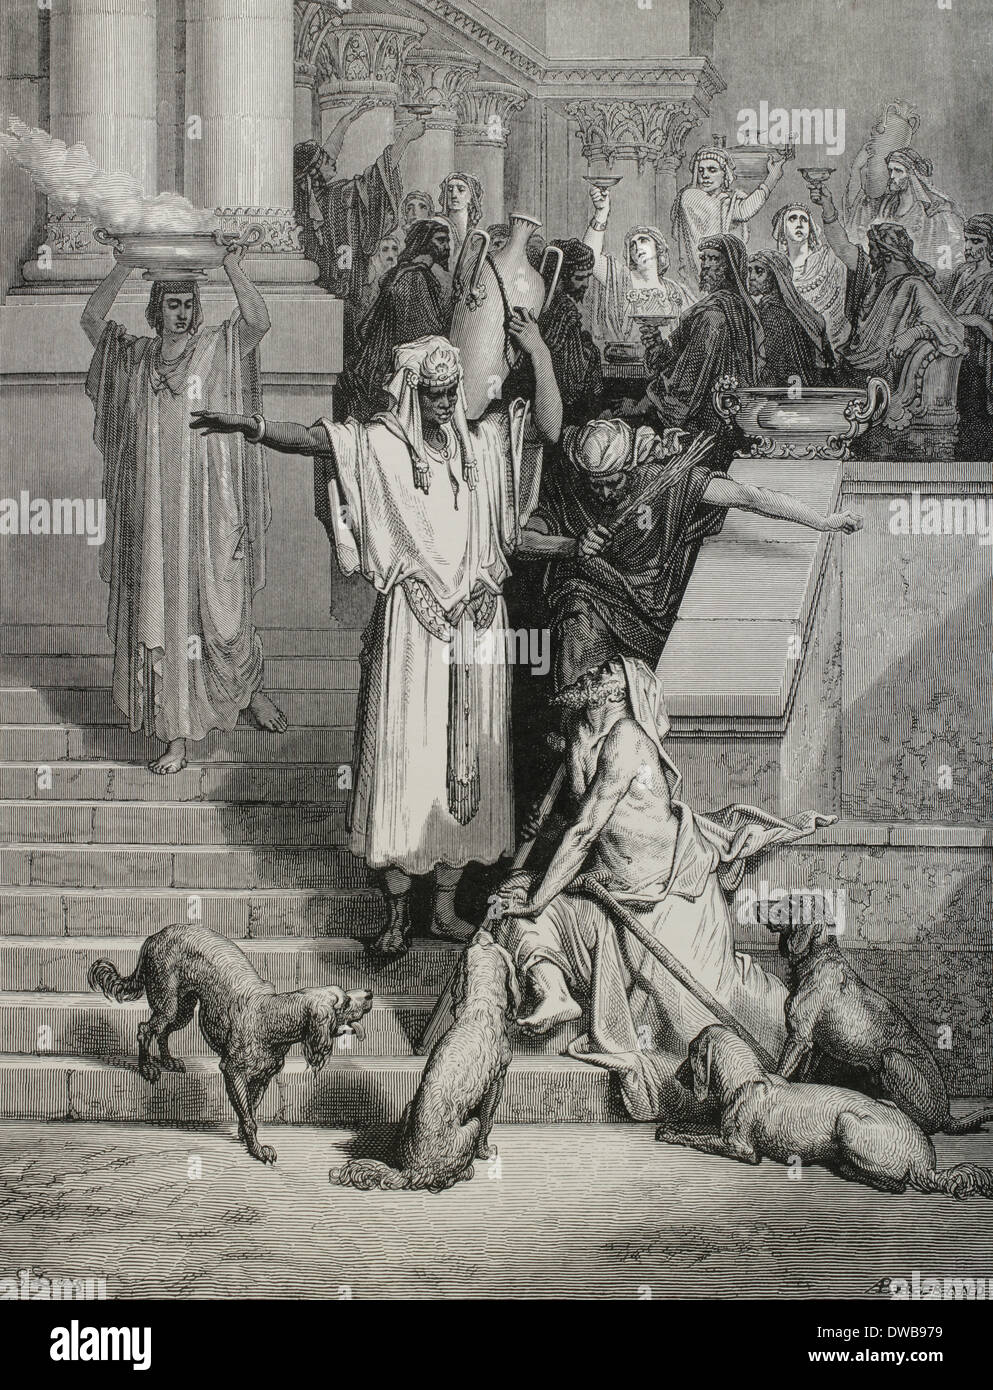 The Parable of Jesus, the Rich man and Lazarus. Gospel of Luke. Engraving by Gustave Dore. 19th century. - Stock Image